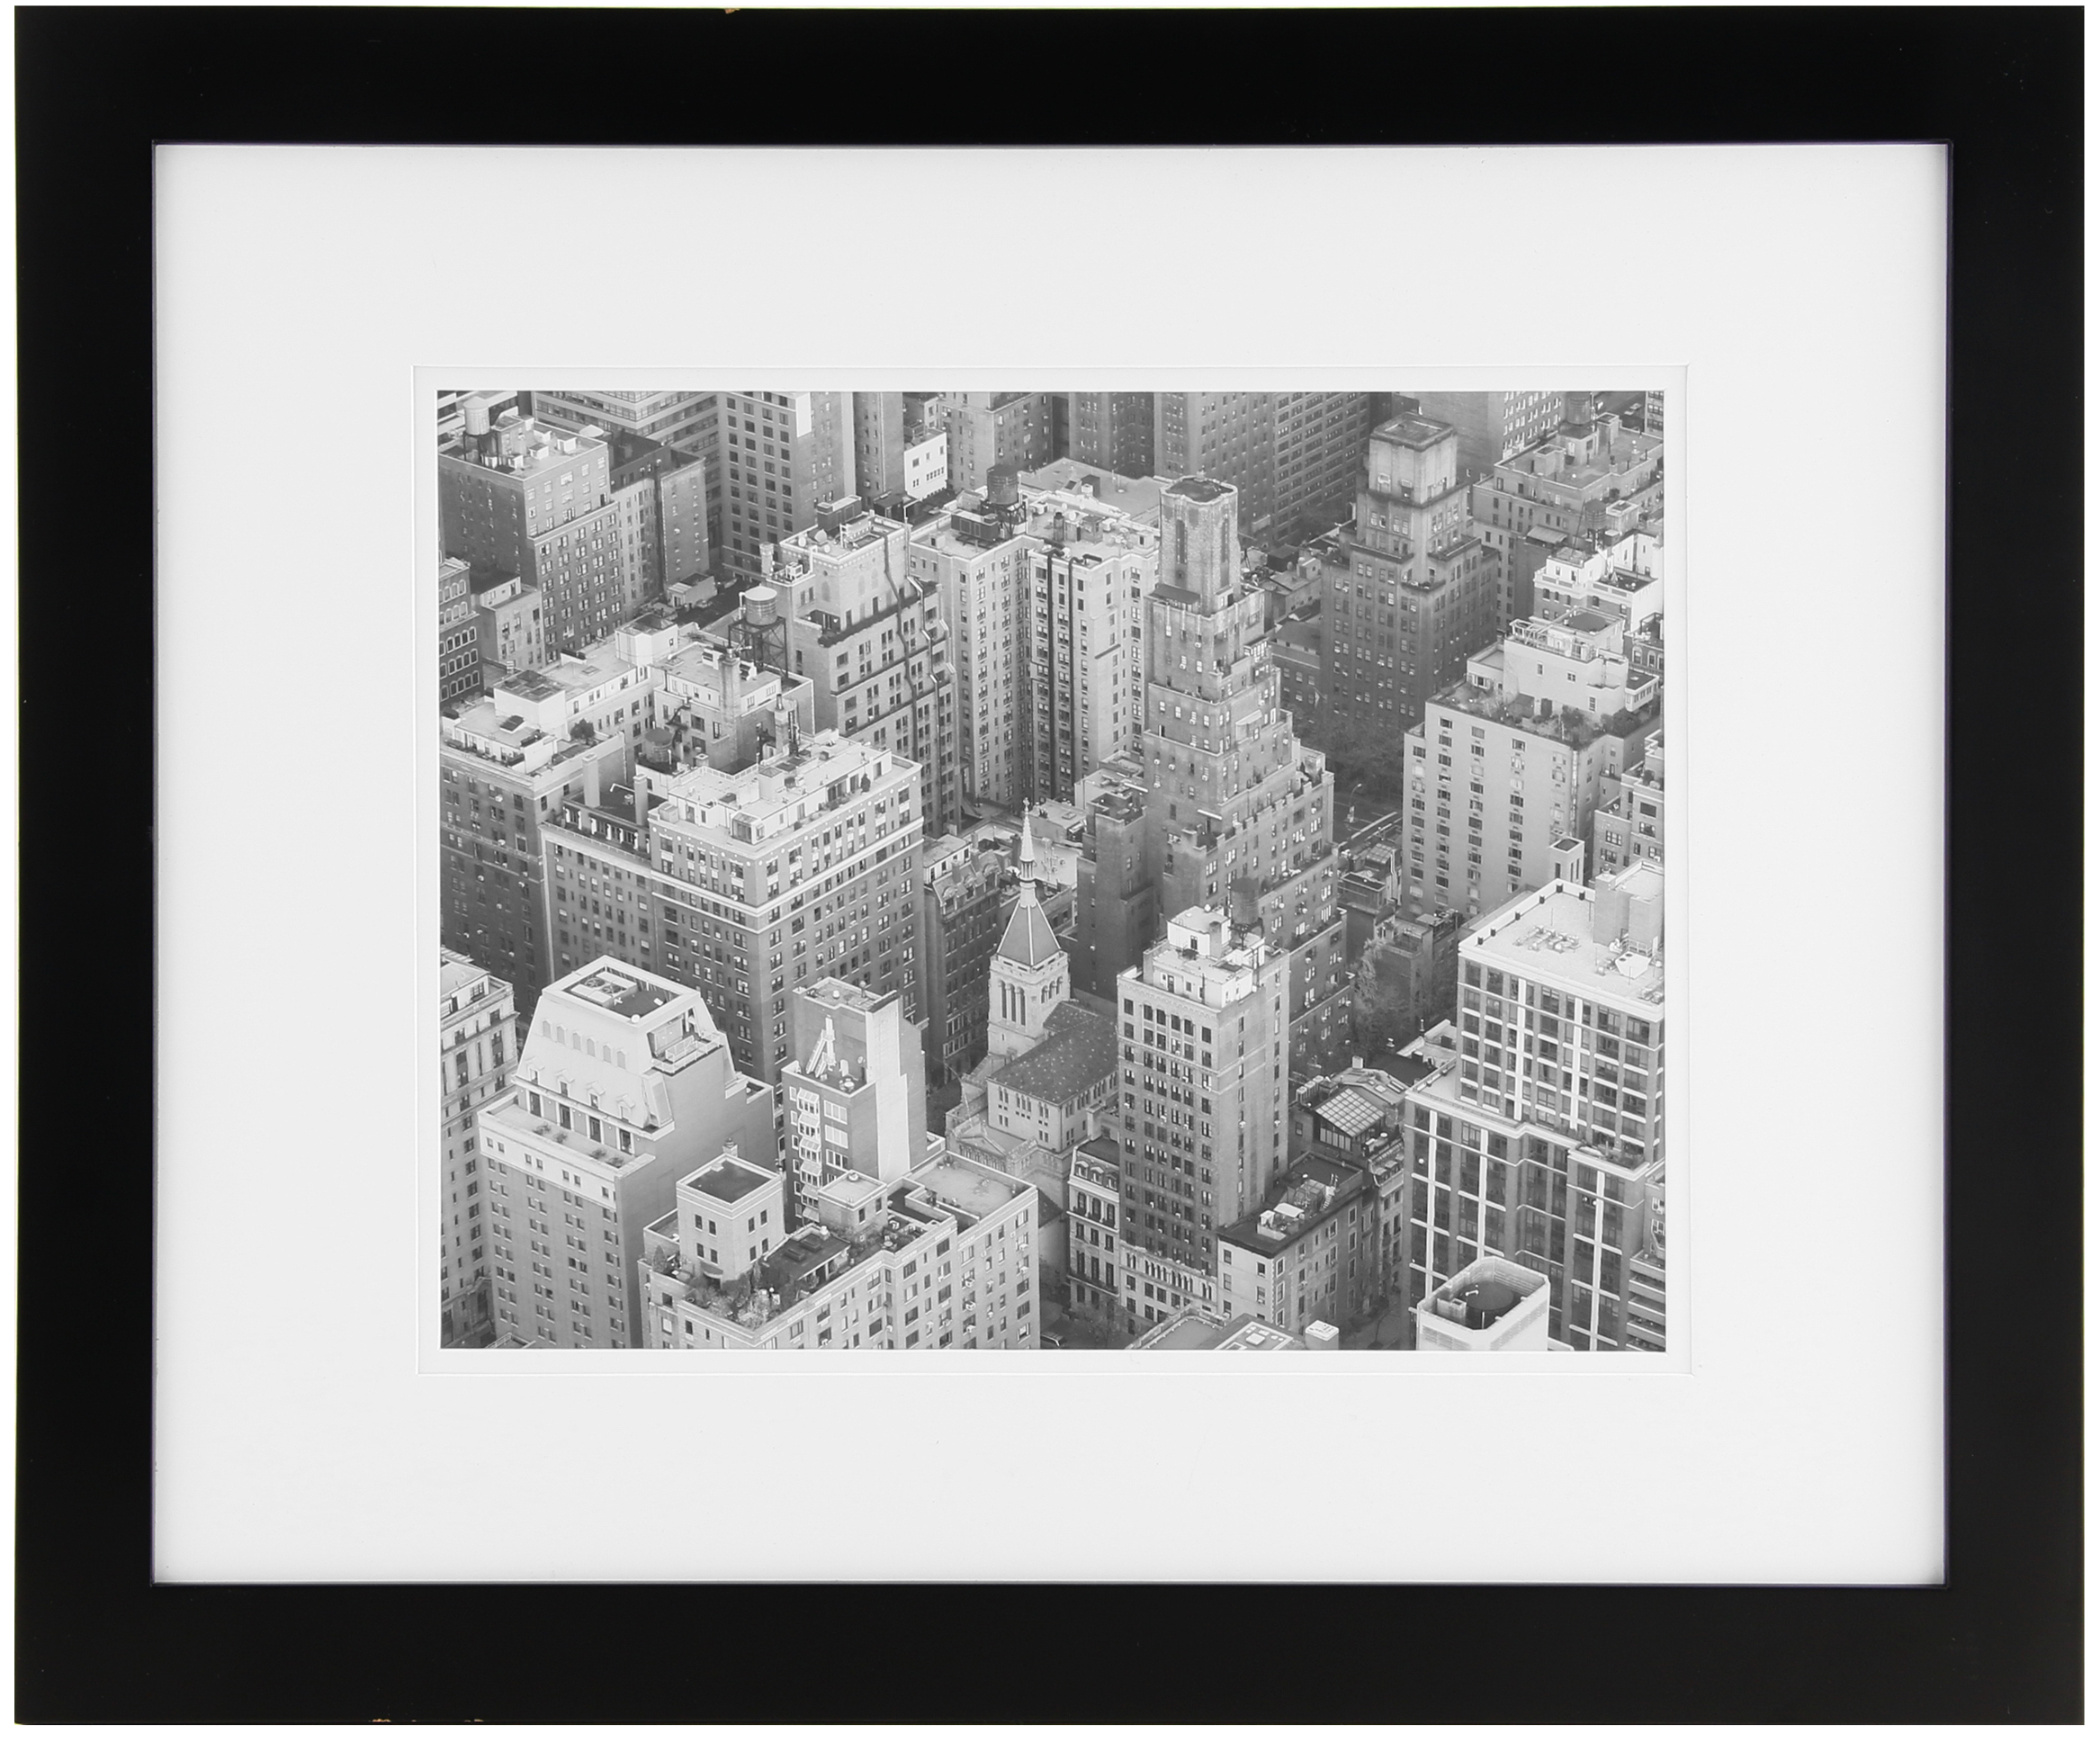 Solutions 16x20 Black Frame Matted 11x14